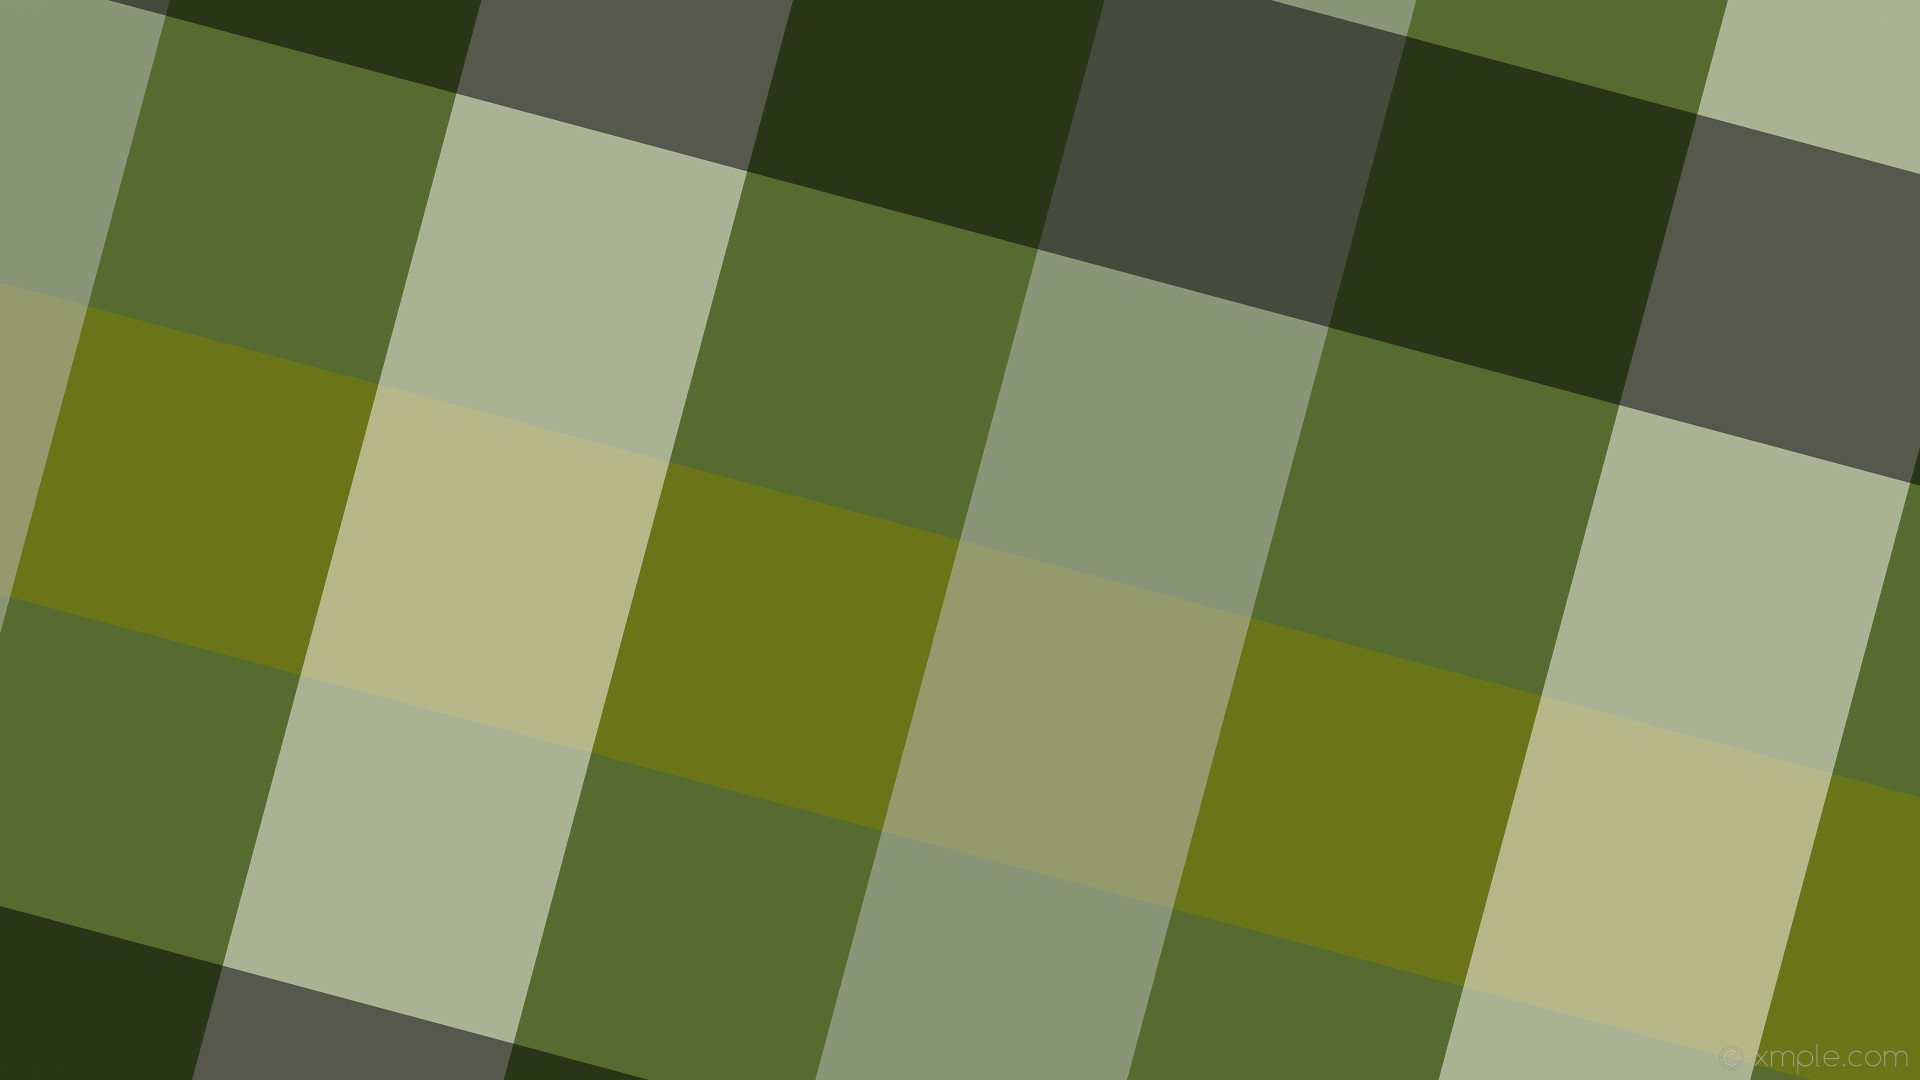 Res: 1920x1080, wallpaper white penta gingham striped green black grey dark olive green  olive silver snow #556b2f